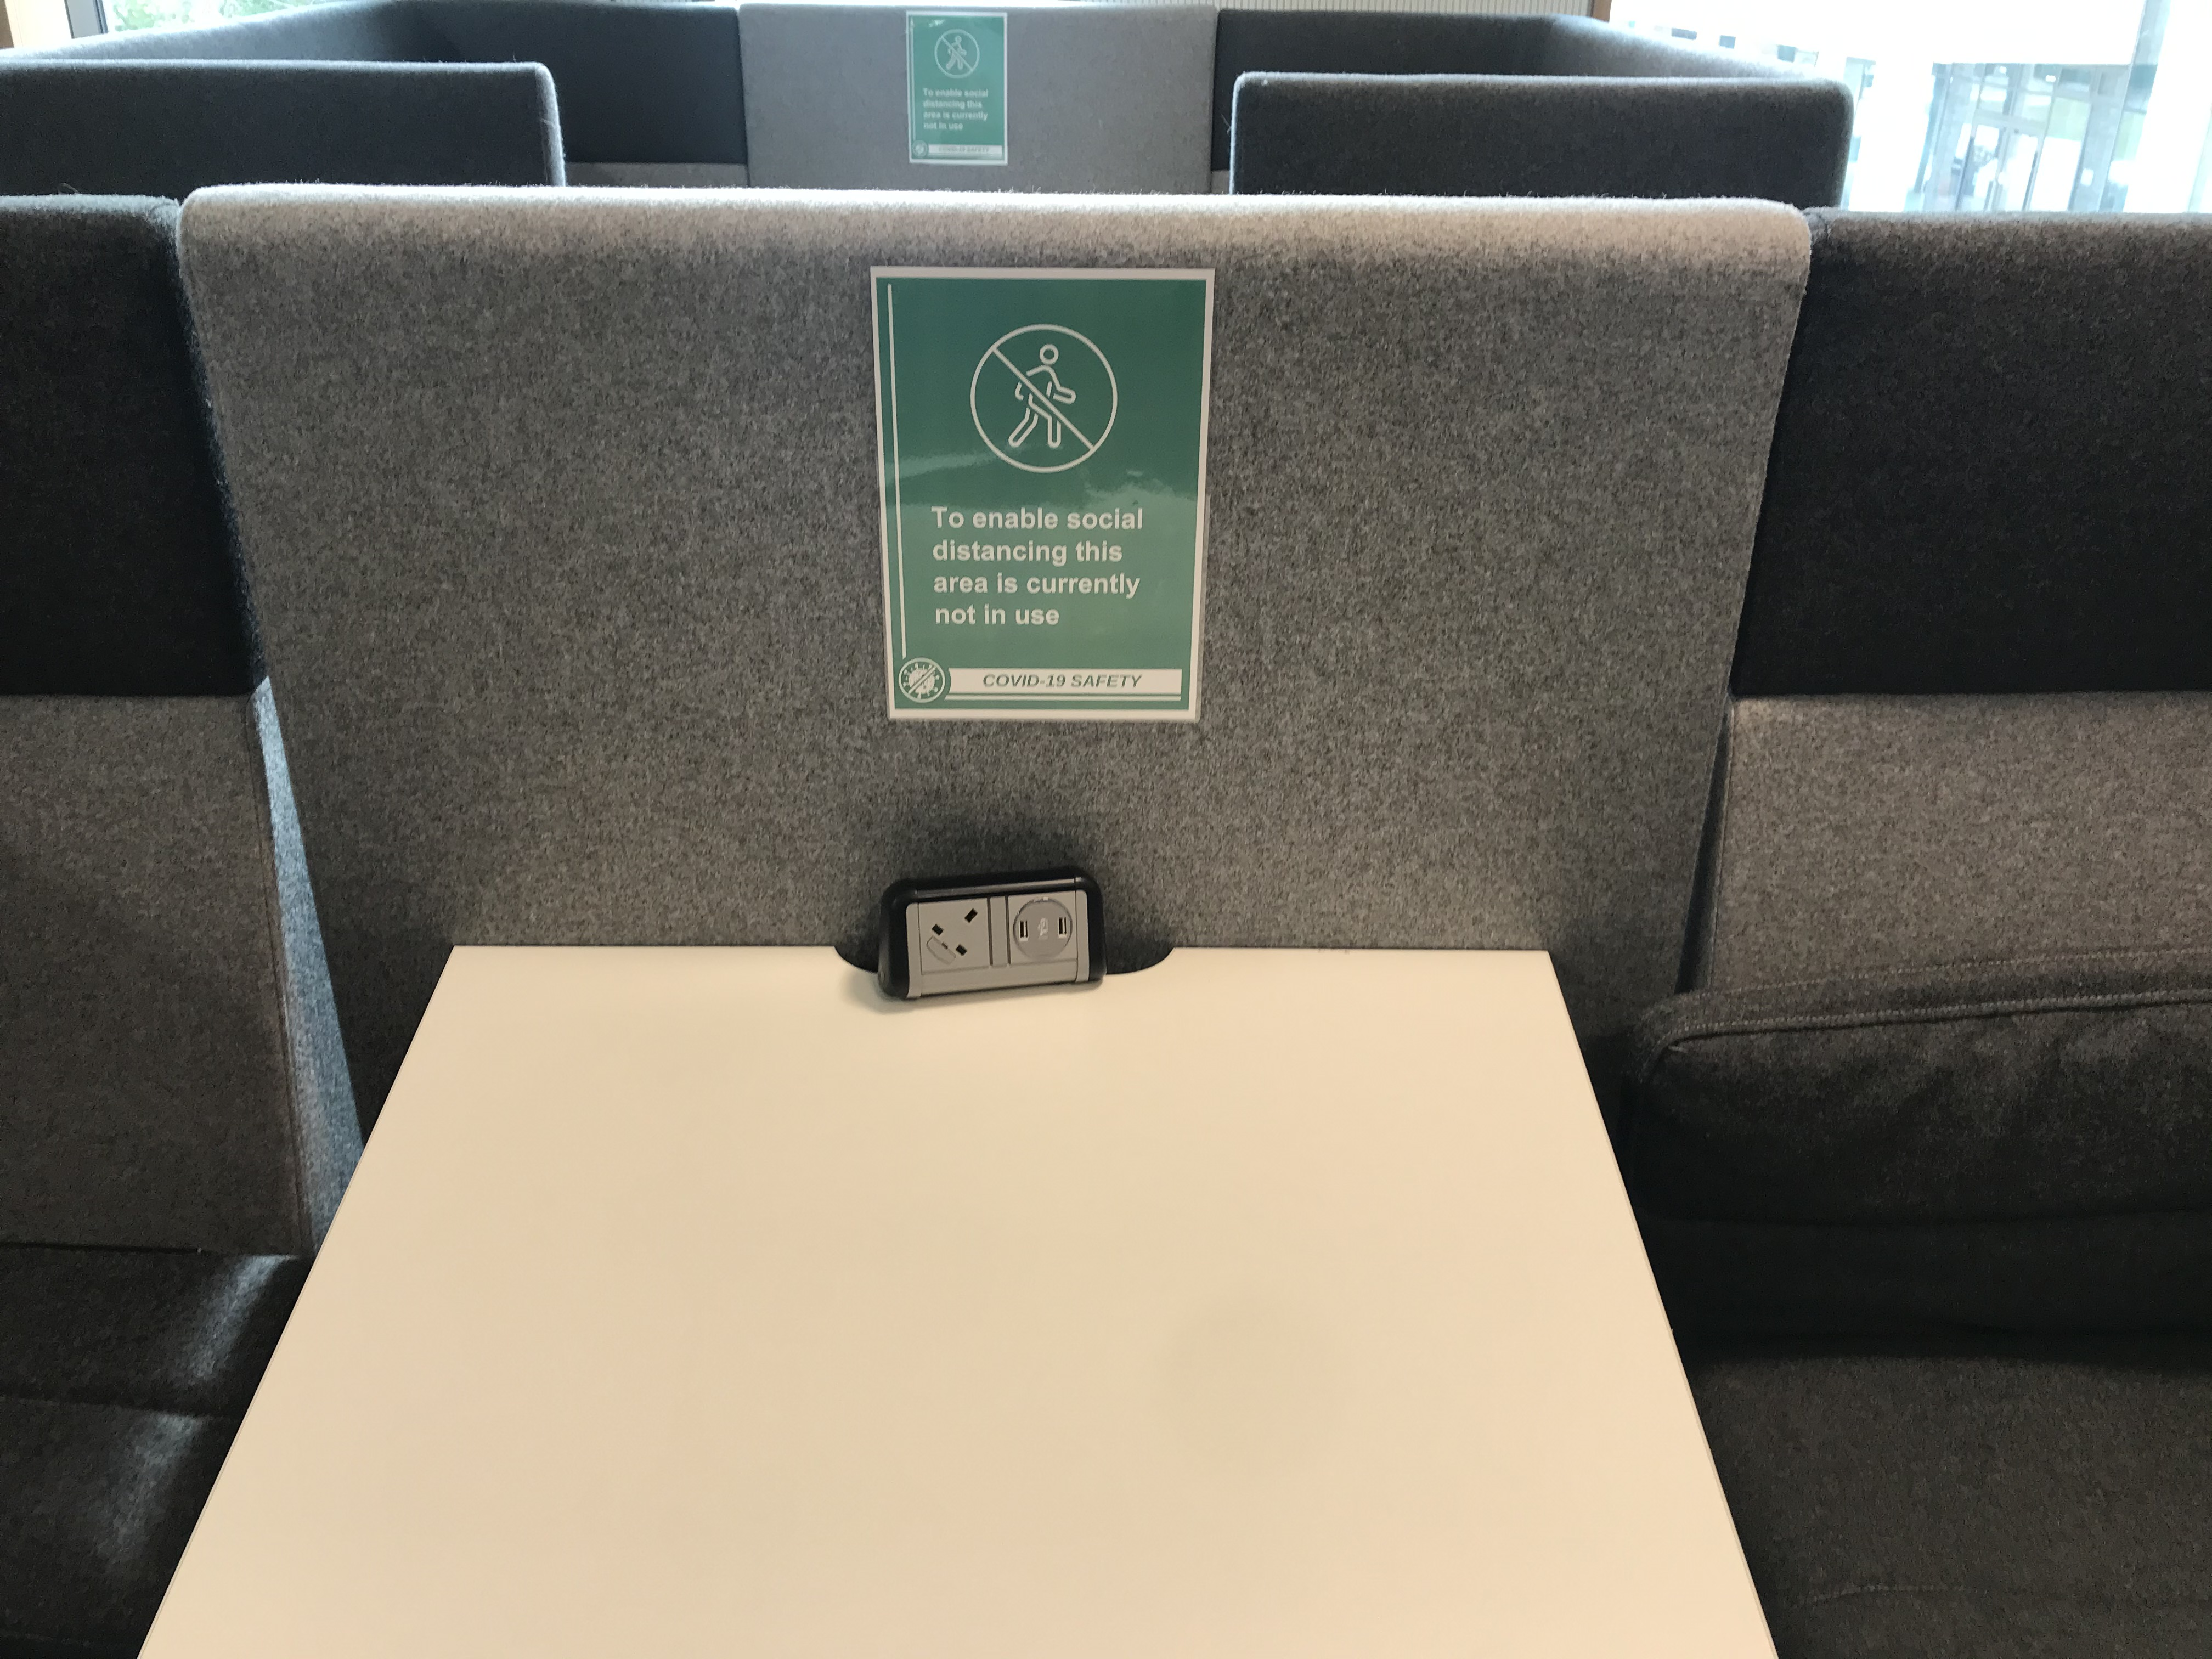 grey study booth with green sign reminding students to socially distance